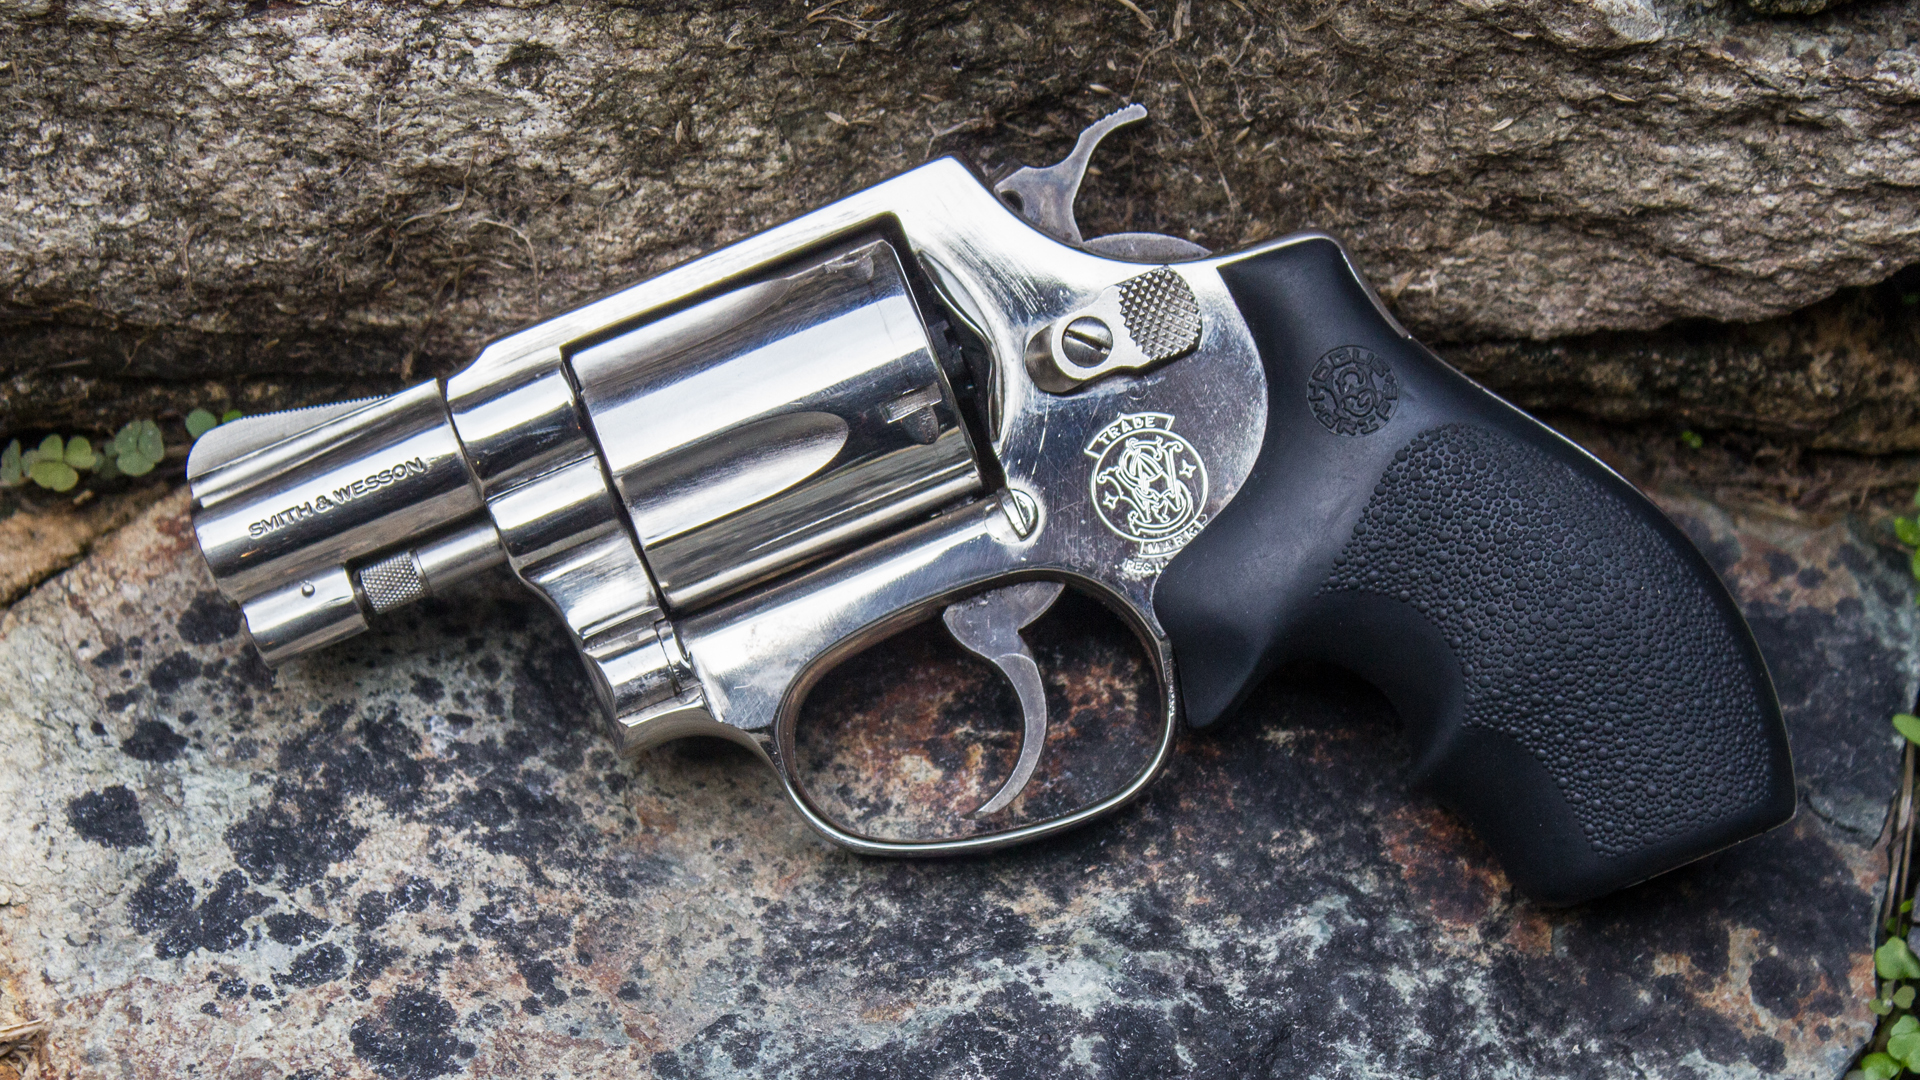 Smith and Wesson Internal Lock: Is it a Deal Breaker?